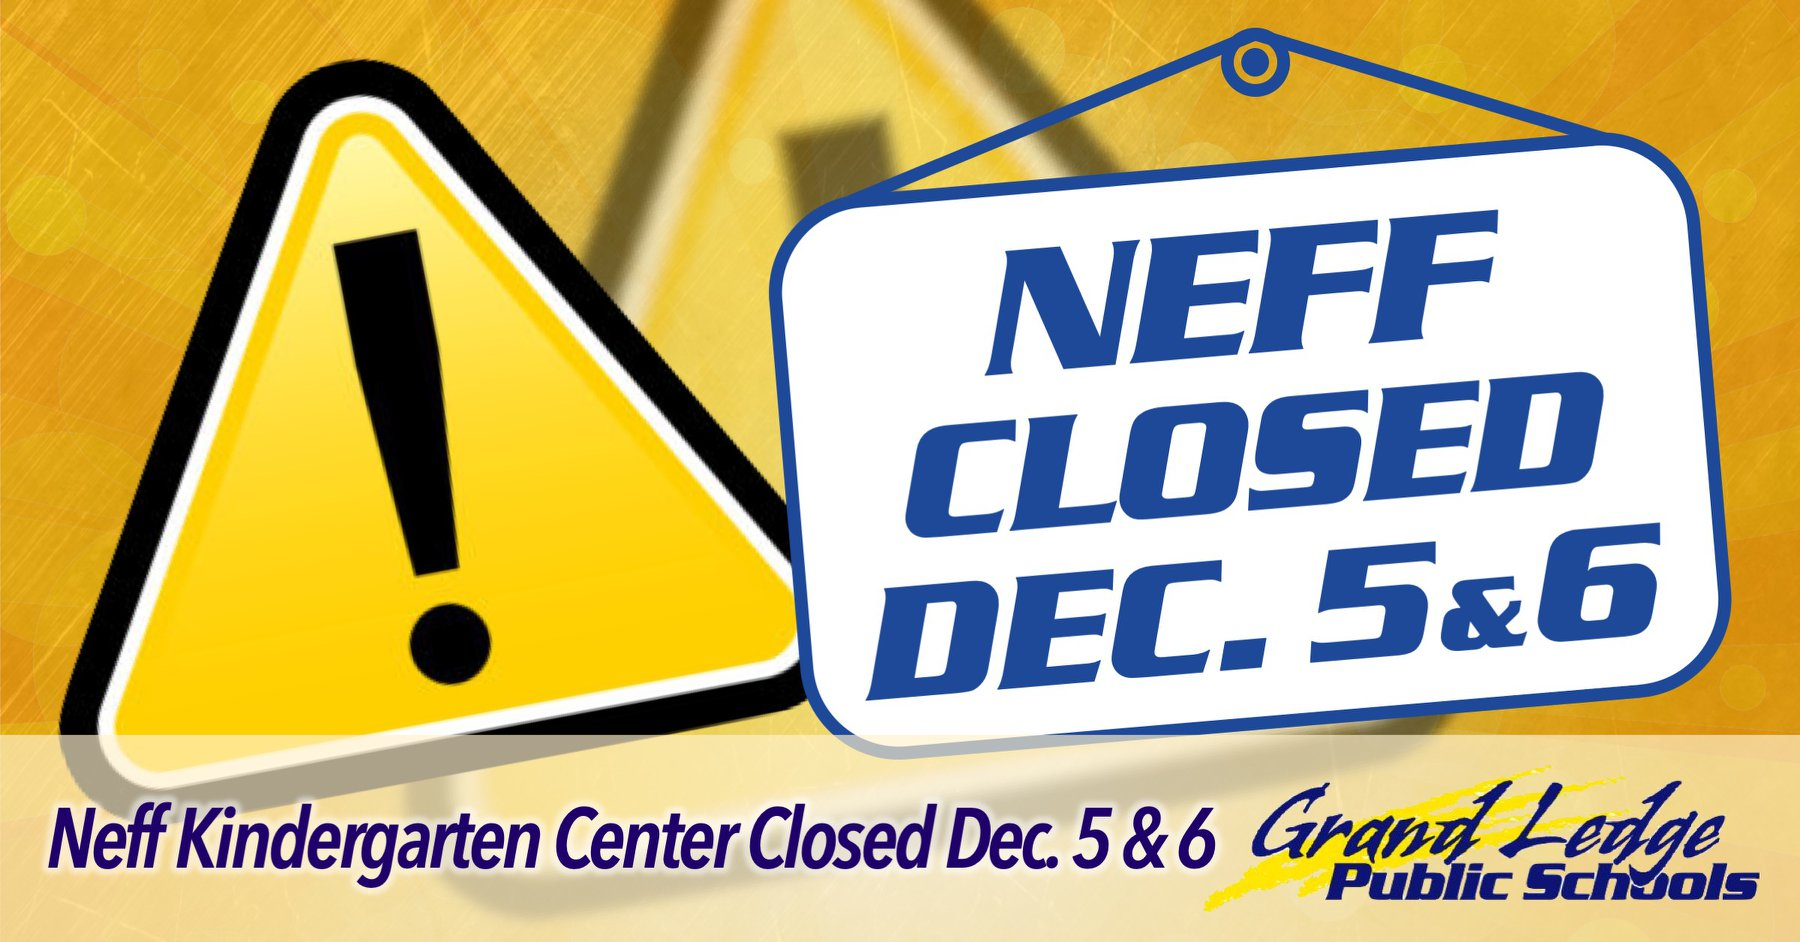 Neff Kindergarten School Closes Due To Illnesses And With Grand Ledge Public Schools Calendar